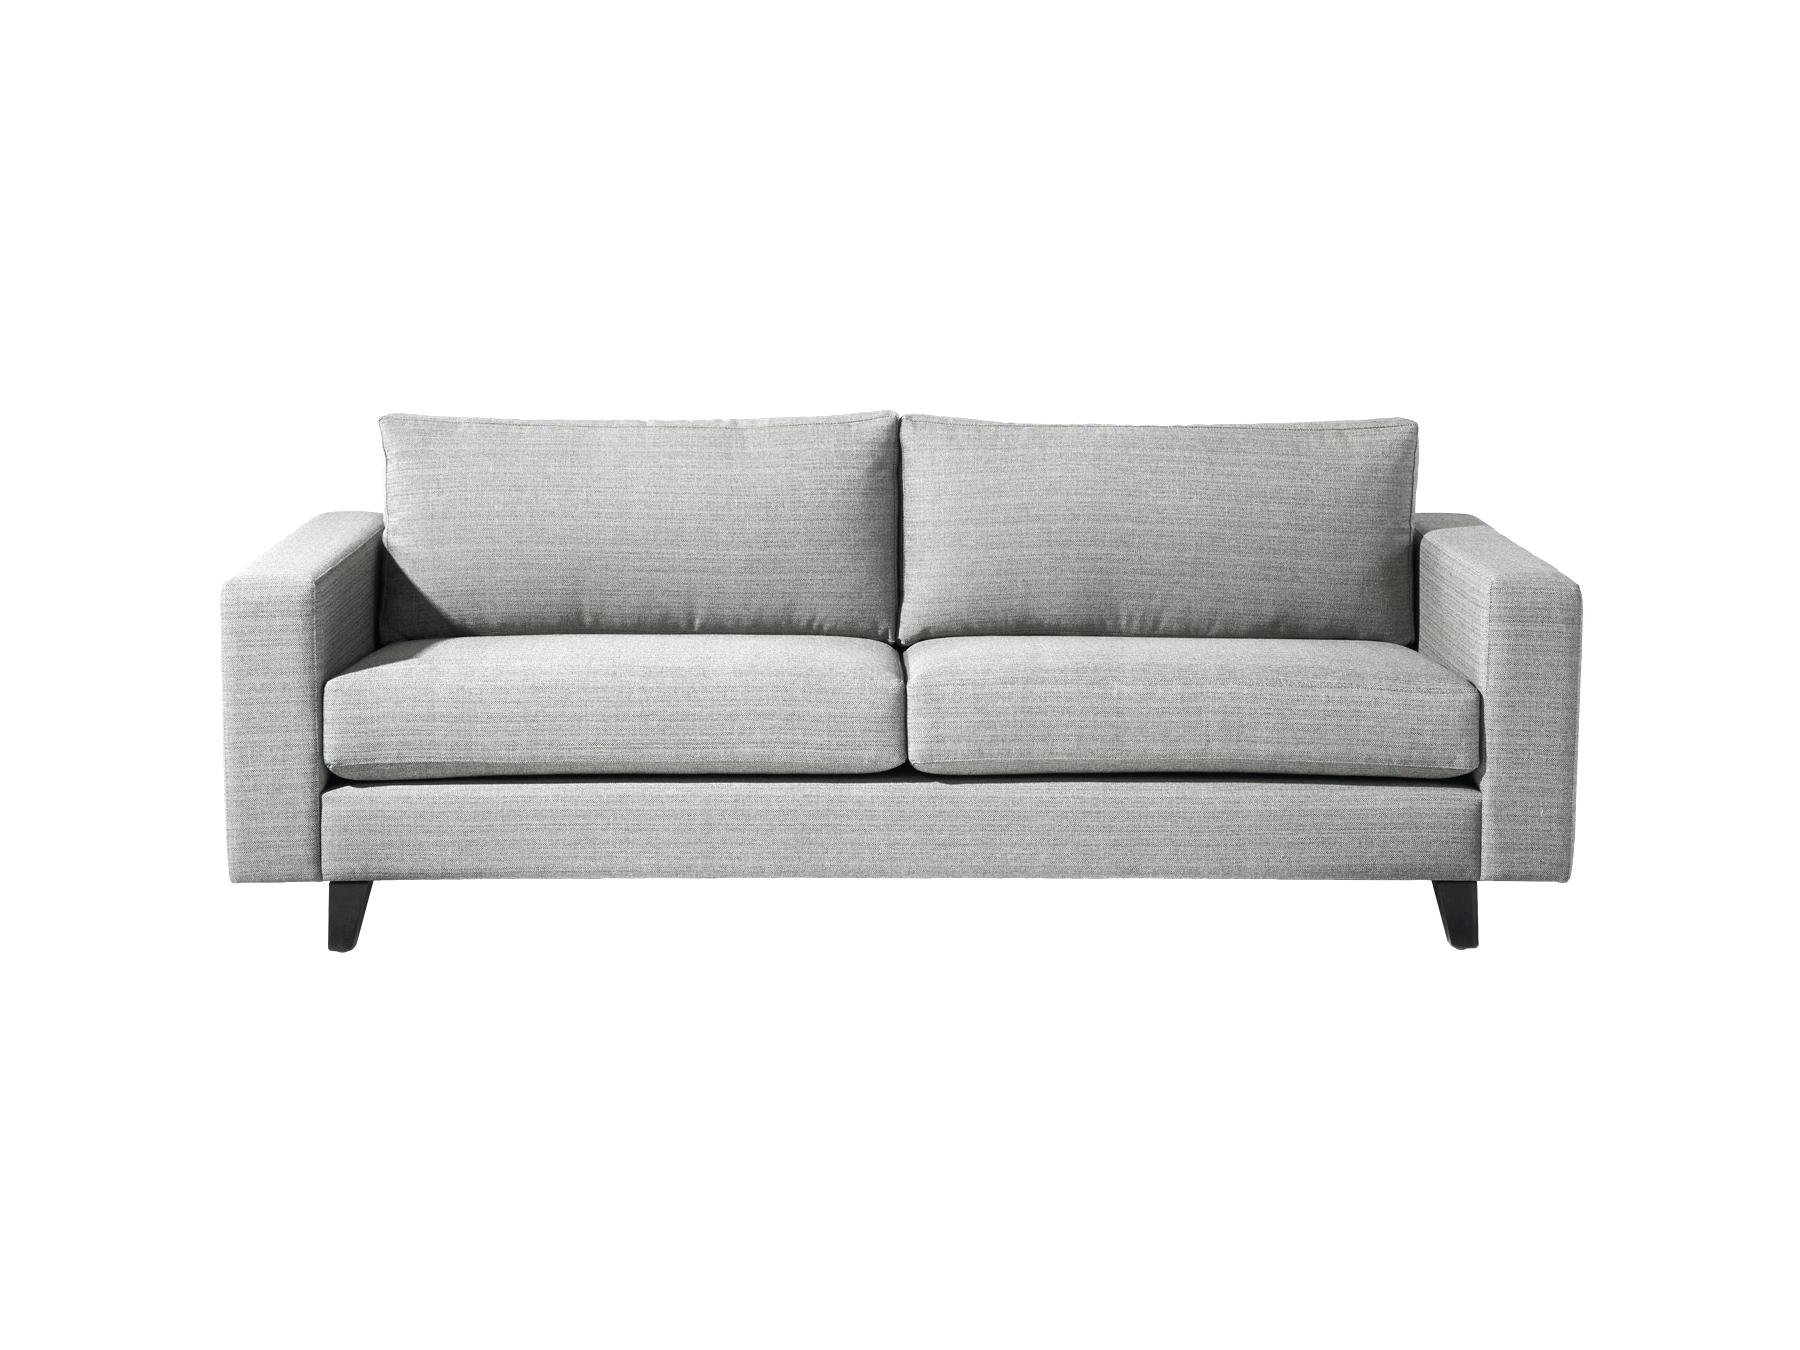 Jordans Sectional Sofas In Well Known Jordans Furniture Couches Sectional Sofawolf And – 4Parkar (Gallery 8 of 20)